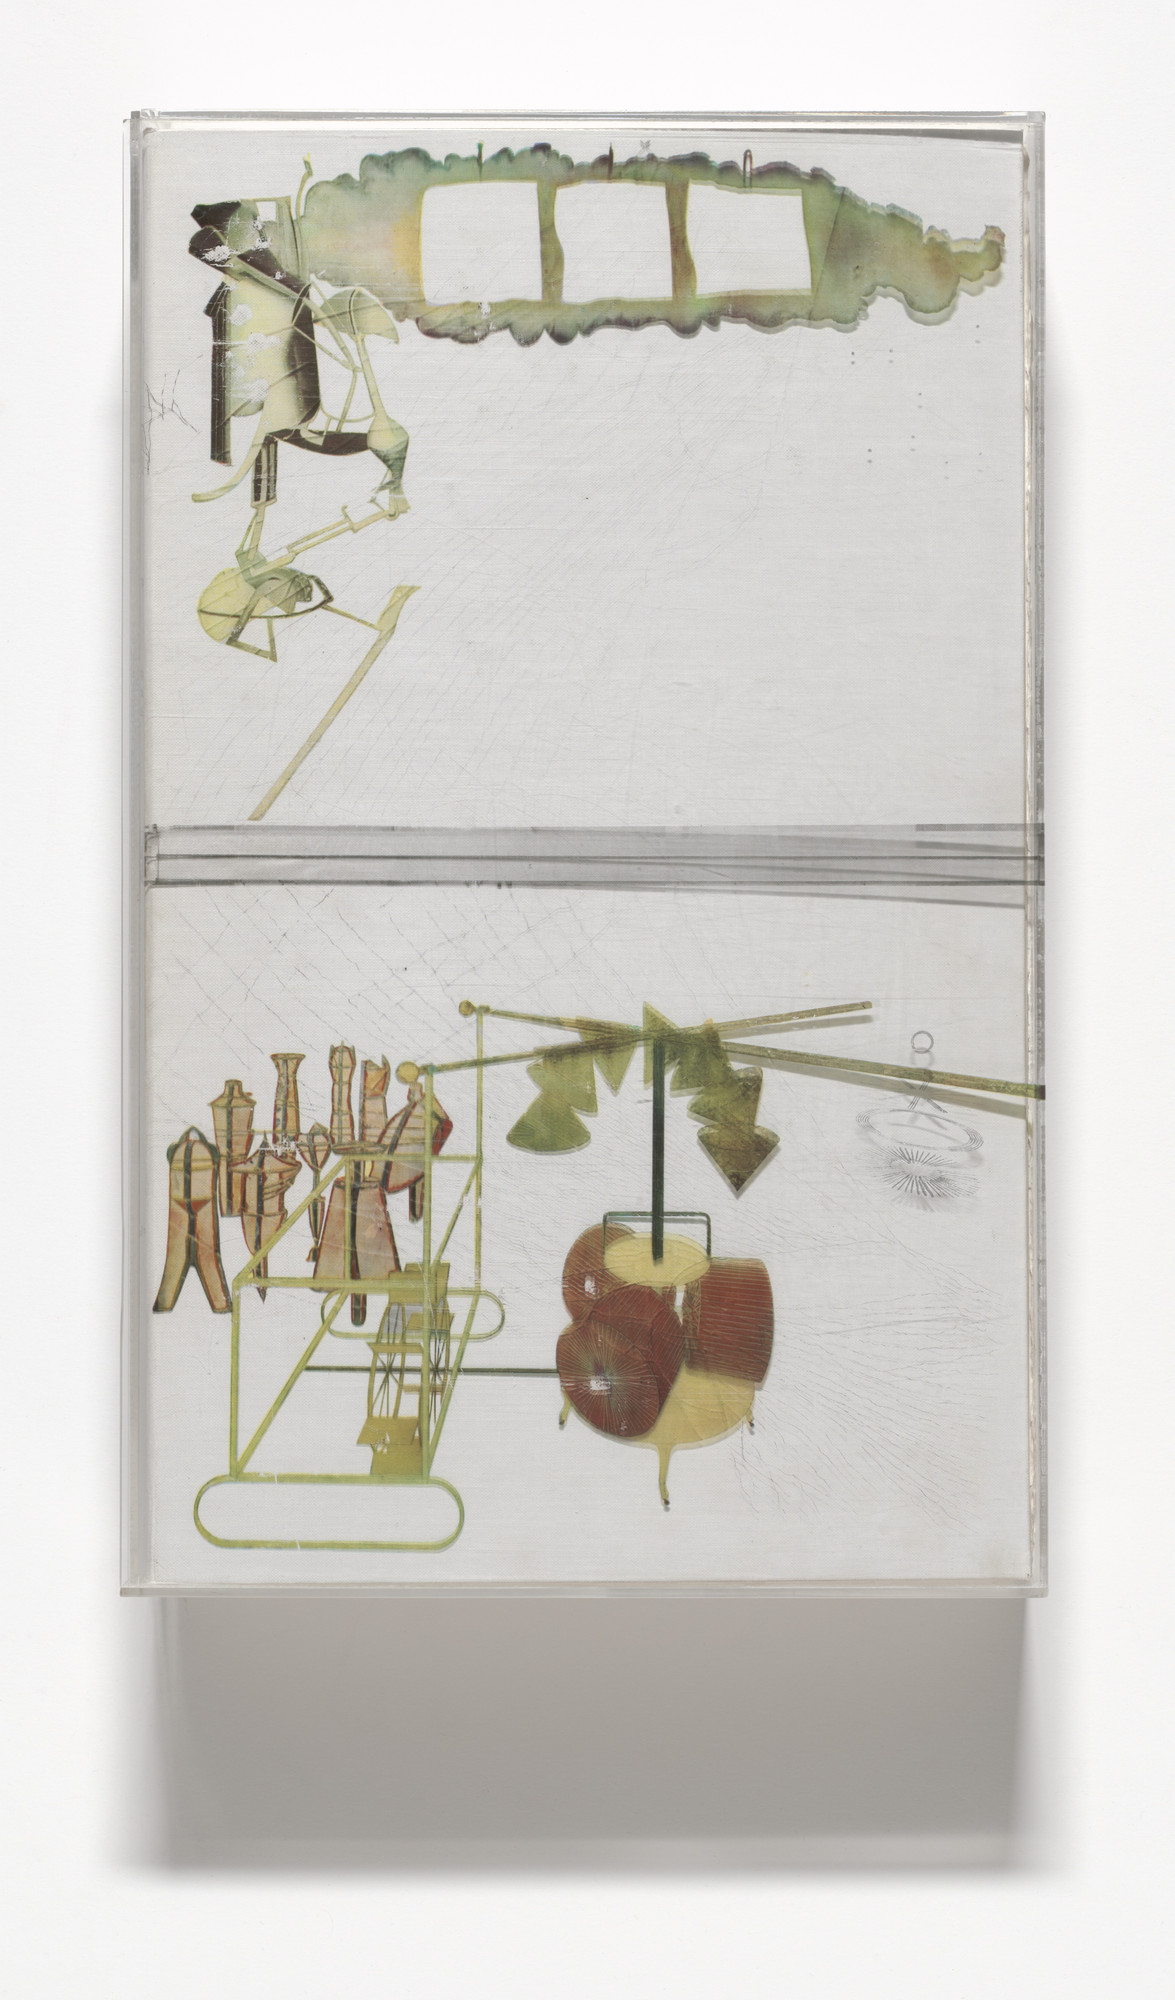 Marcel Duchamp. The Large Glass and Related Works, Vol. 1. 1965, published 1967